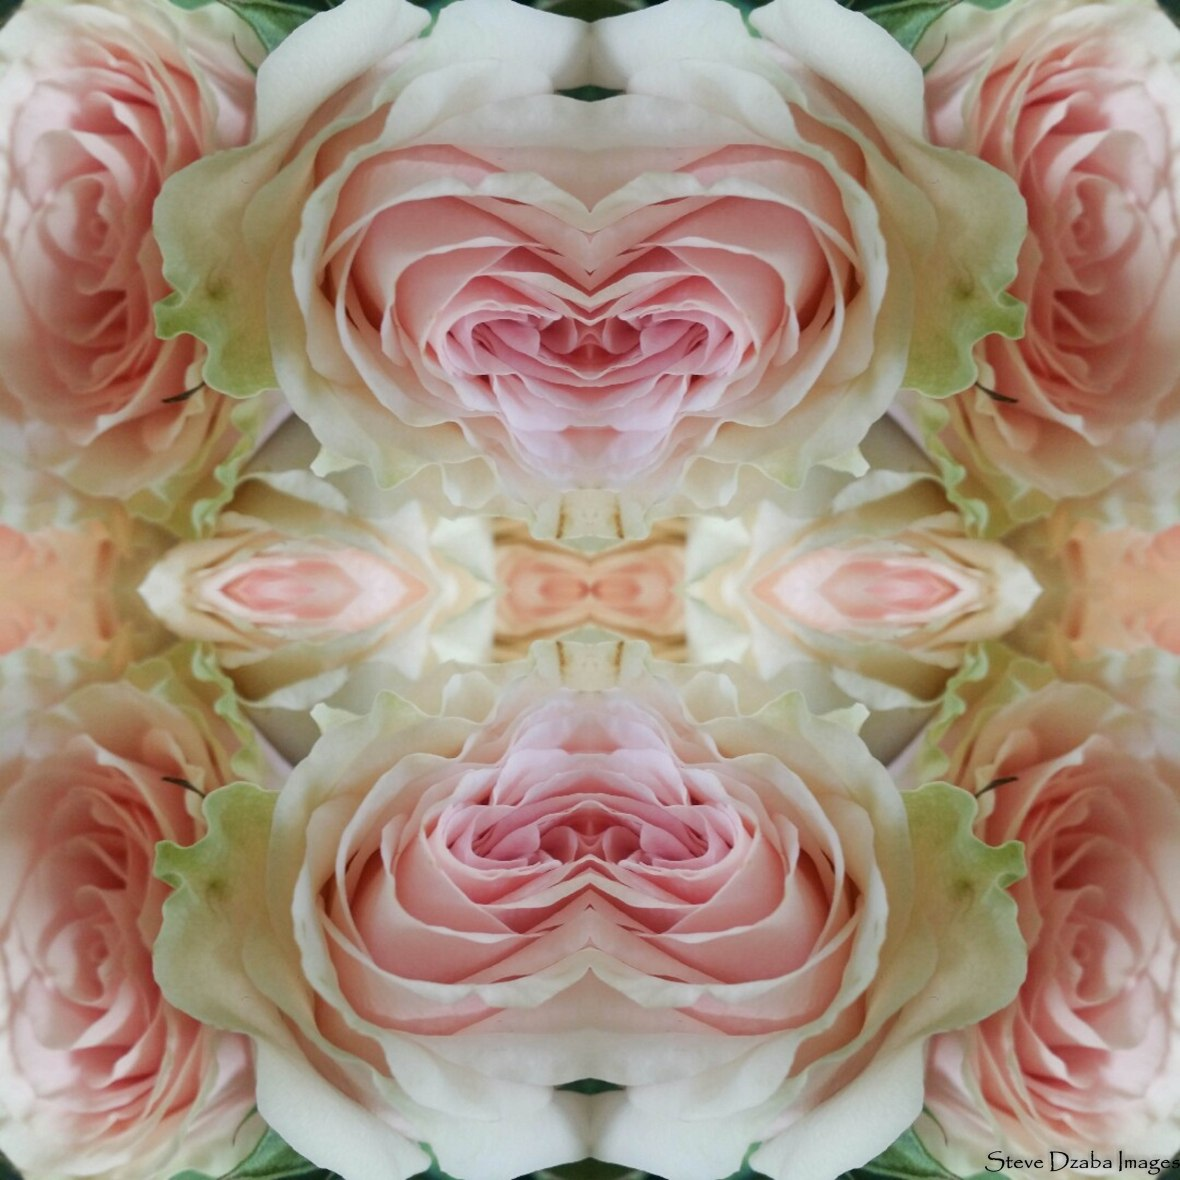 floral-portrait-series-the-eden-spray-pink-n-green-garden-roses-hearts-limited-edition-2